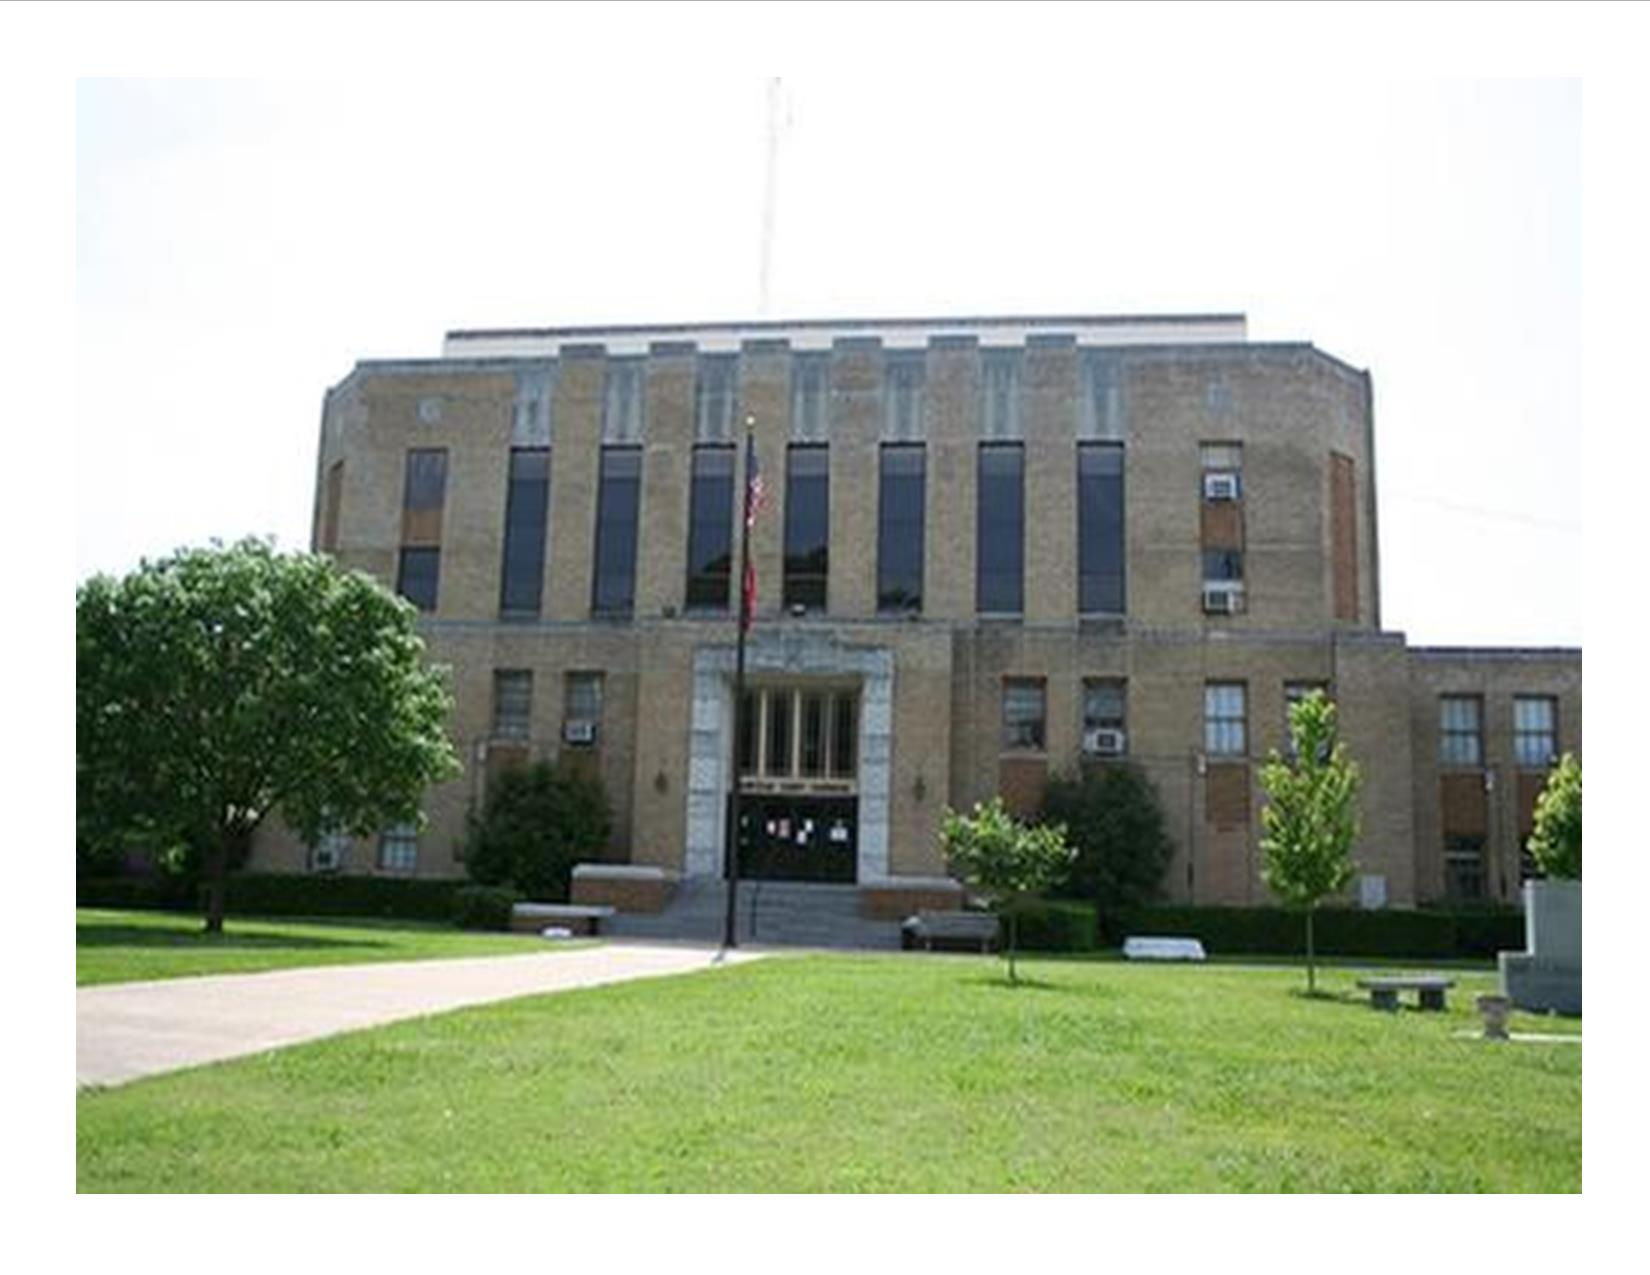 Hempstead County Courthouse